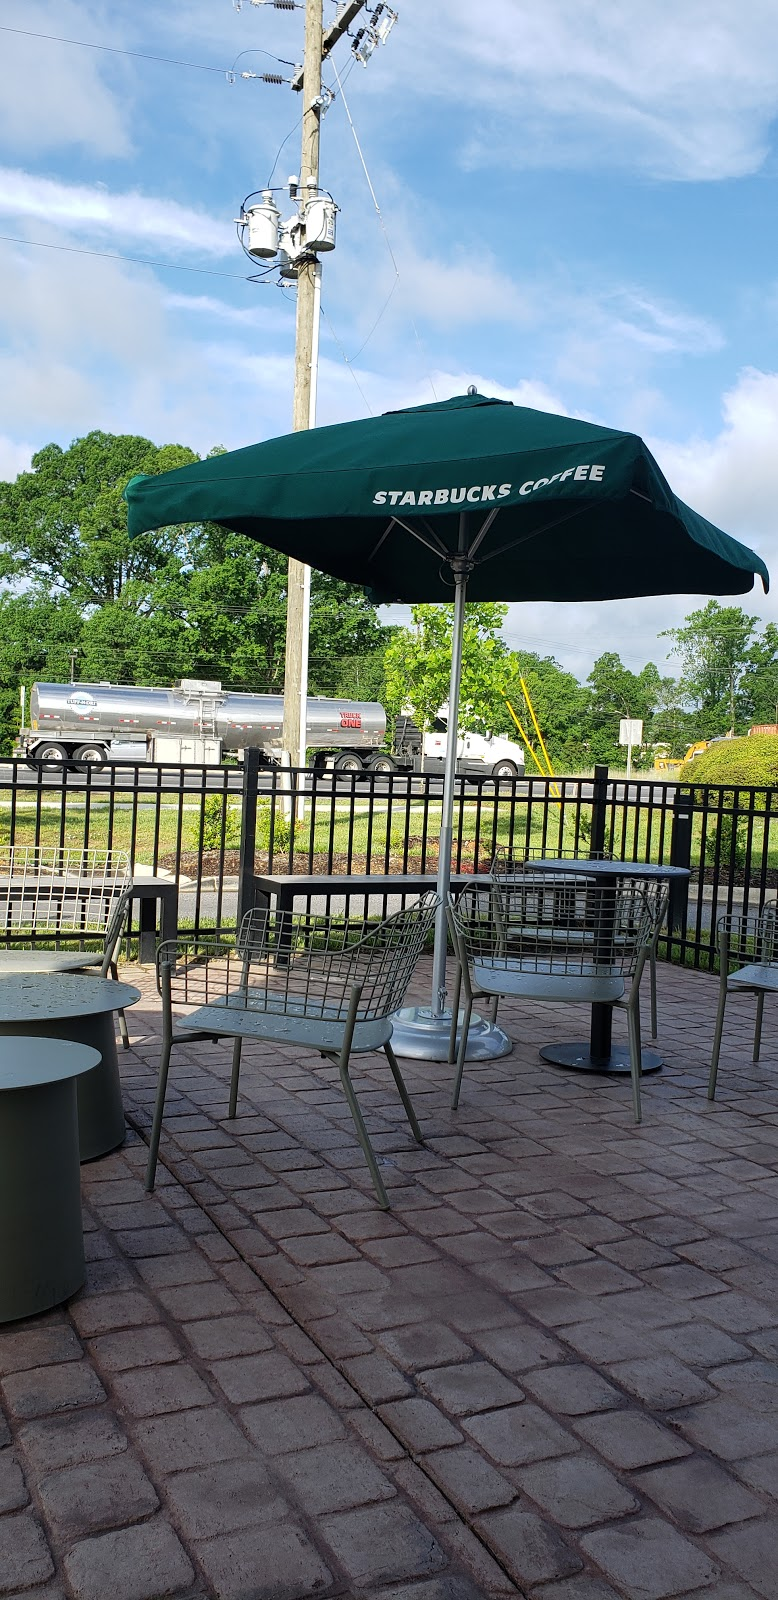 Starbucks Indian Trail | cafe | 13731 E Independence Blvd, Indian Trail, NC 28079, USA | 7042422363 OR +1 704-242-2363